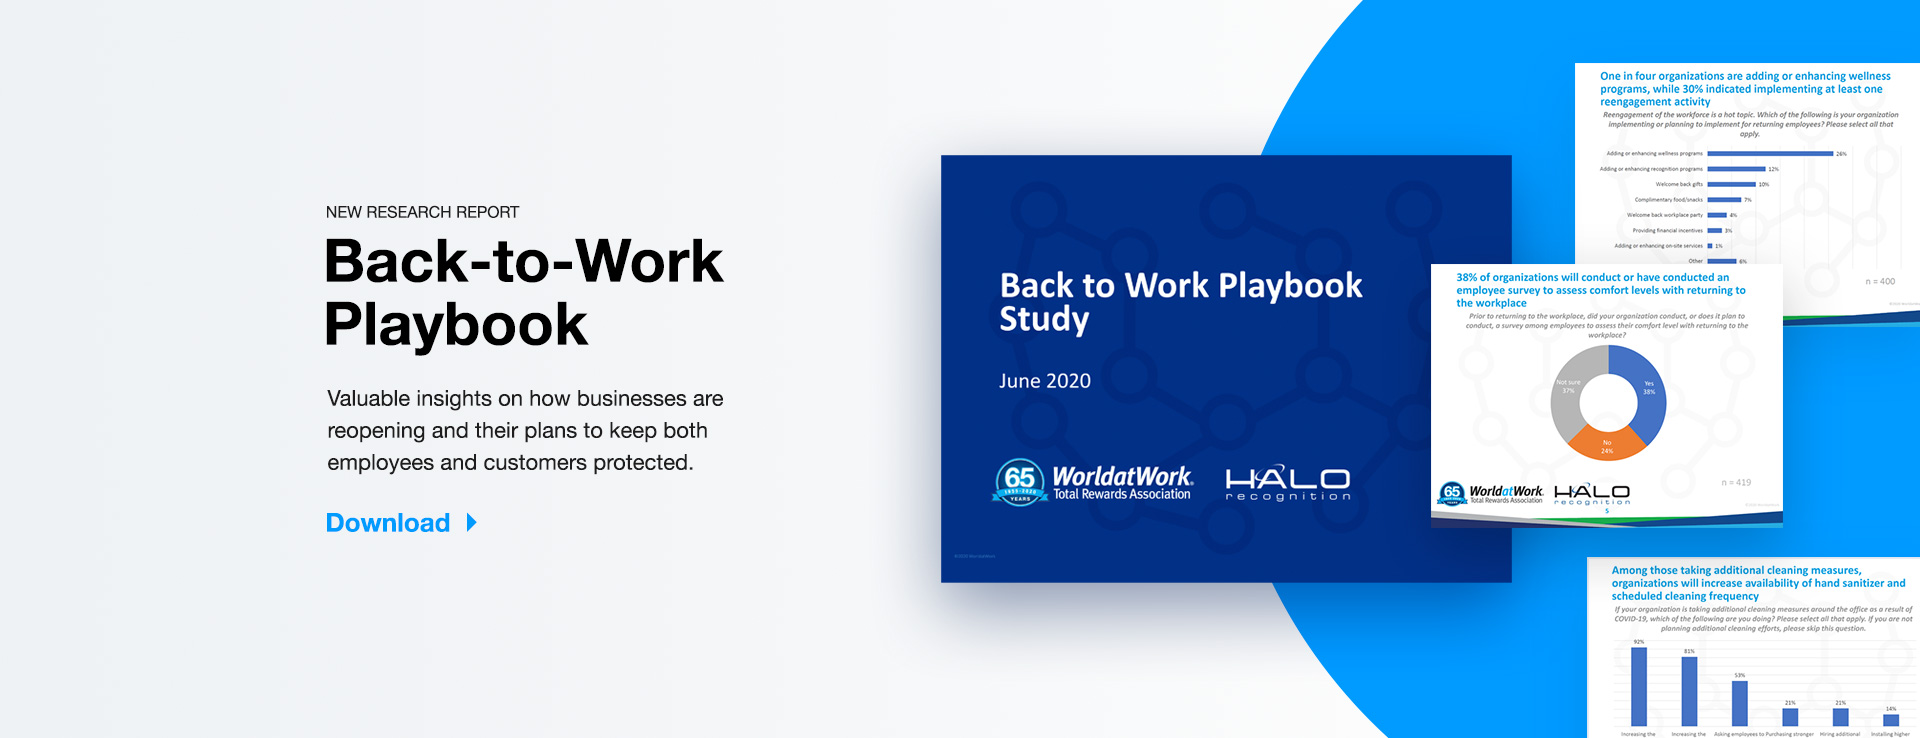 Back To Work Playbook - Valuable insights on how businesses are reopening and their plans to keep both employees and customers protected.